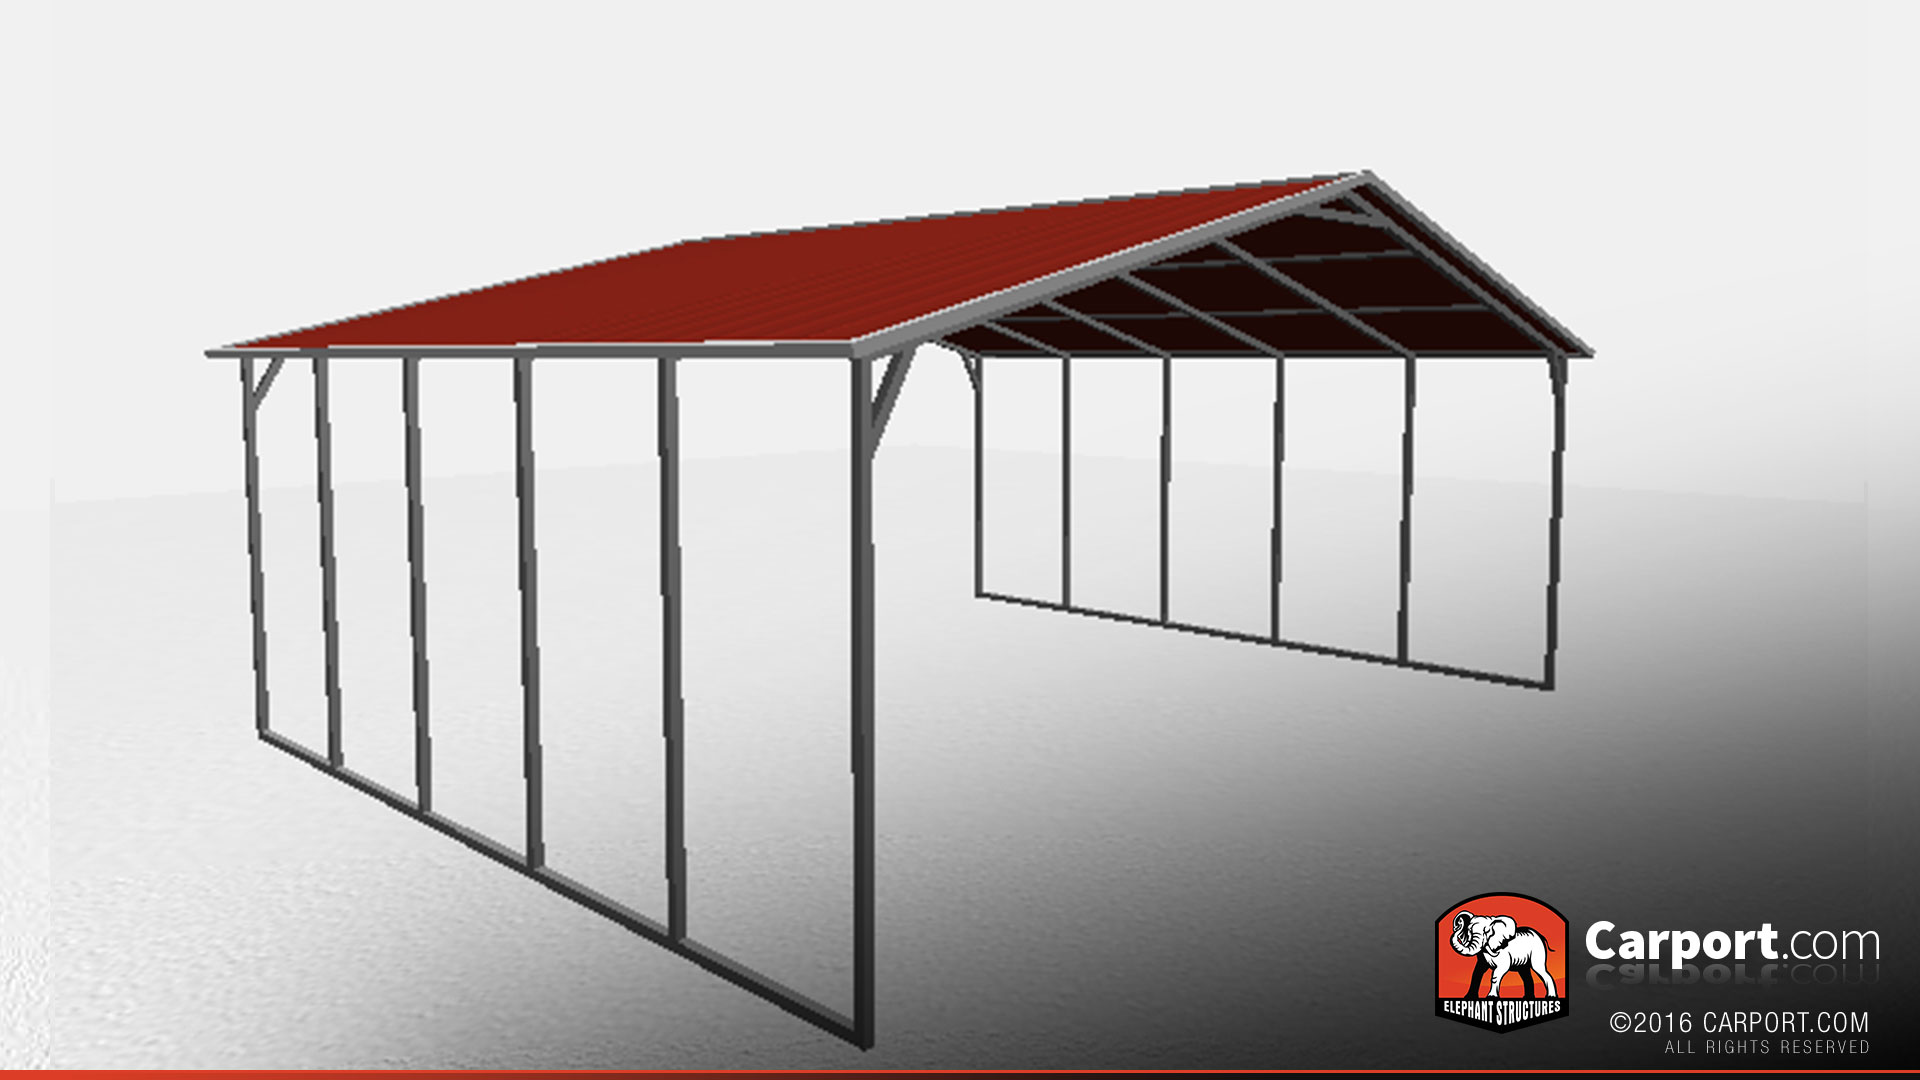 26 39 x 21 39 triple wide open steel carport shop metal buildings online. Black Bedroom Furniture Sets. Home Design Ideas